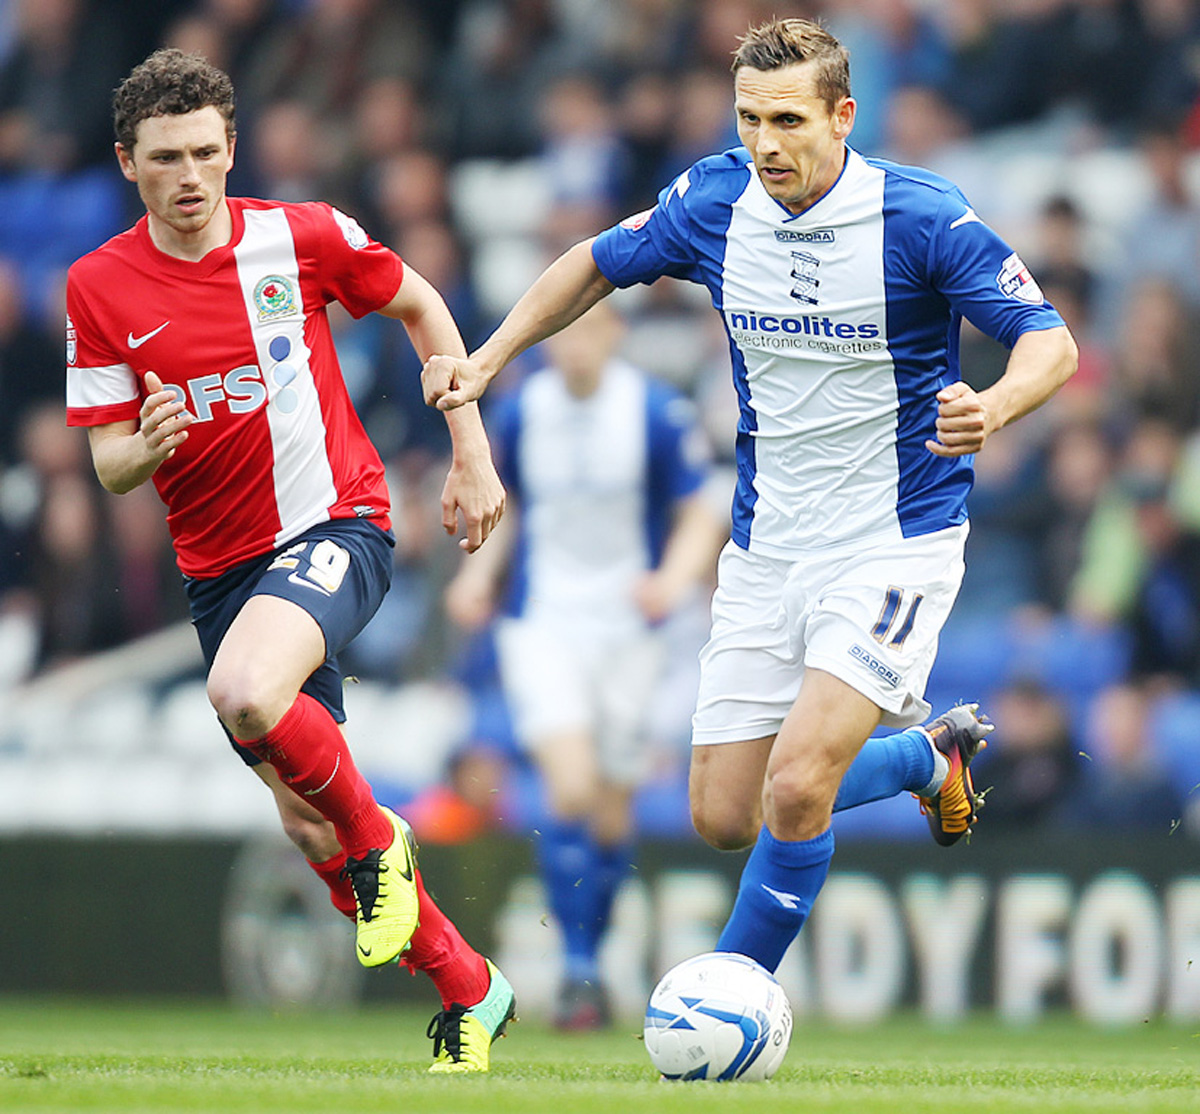 Corry Evans tracks his man at Birmingham